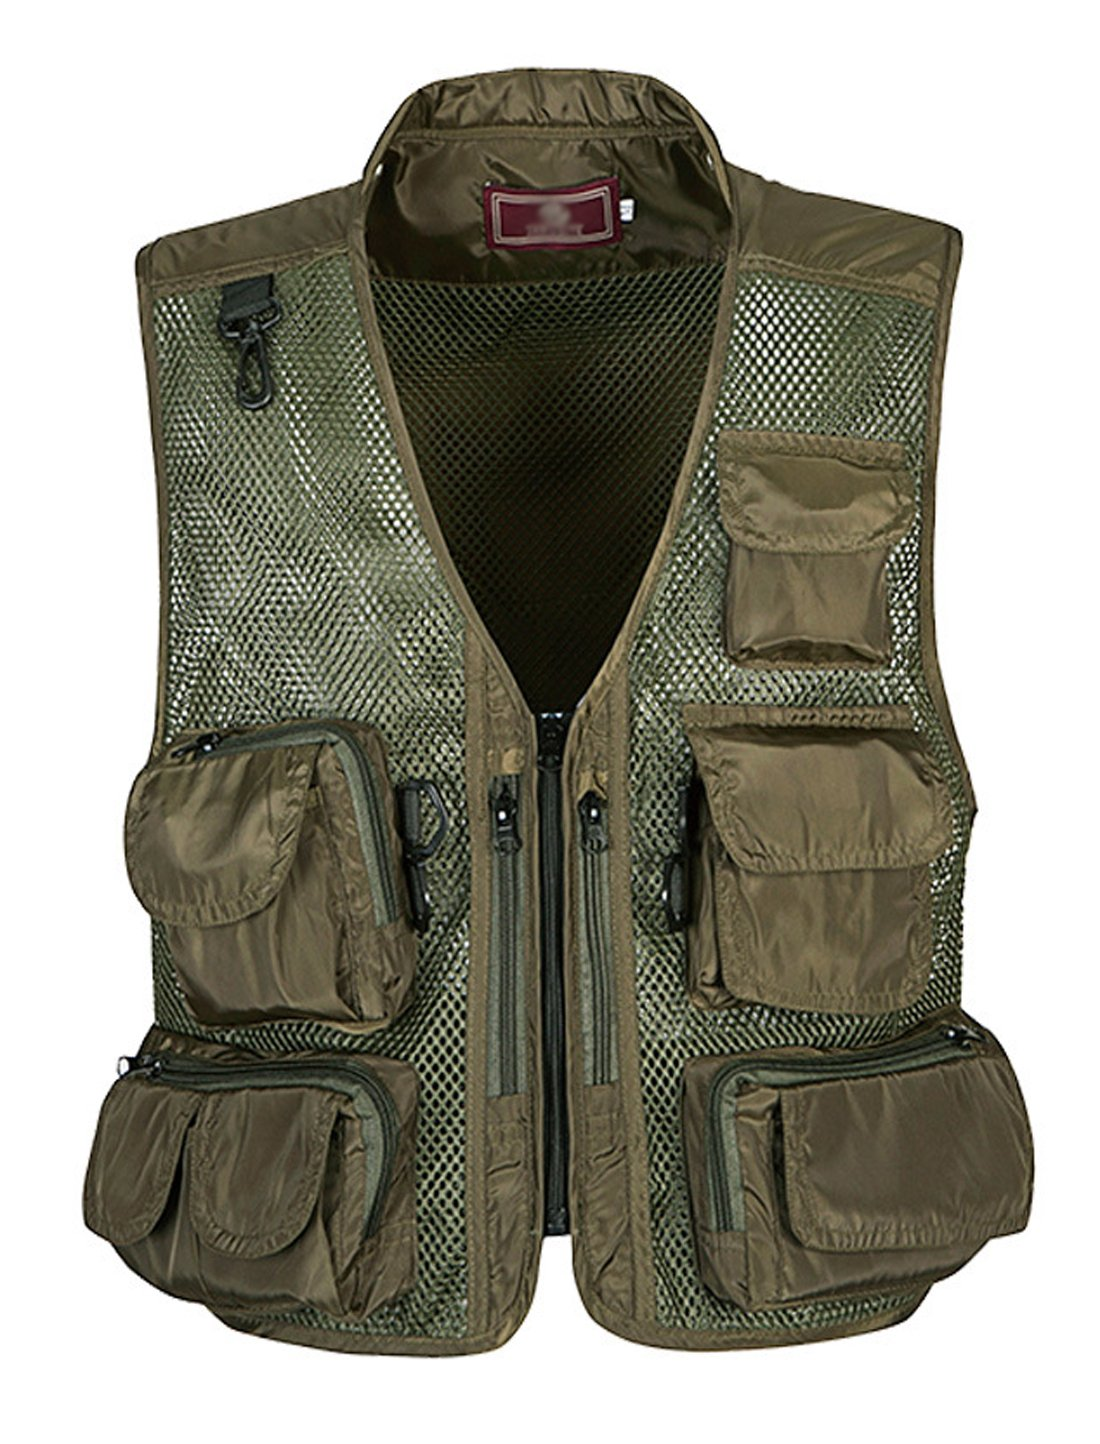 Gihuo Men's Outdoors Utility Hunting Travels Tactical Mesh Removable Vest Multiple Pockets (X-L, Army Green)